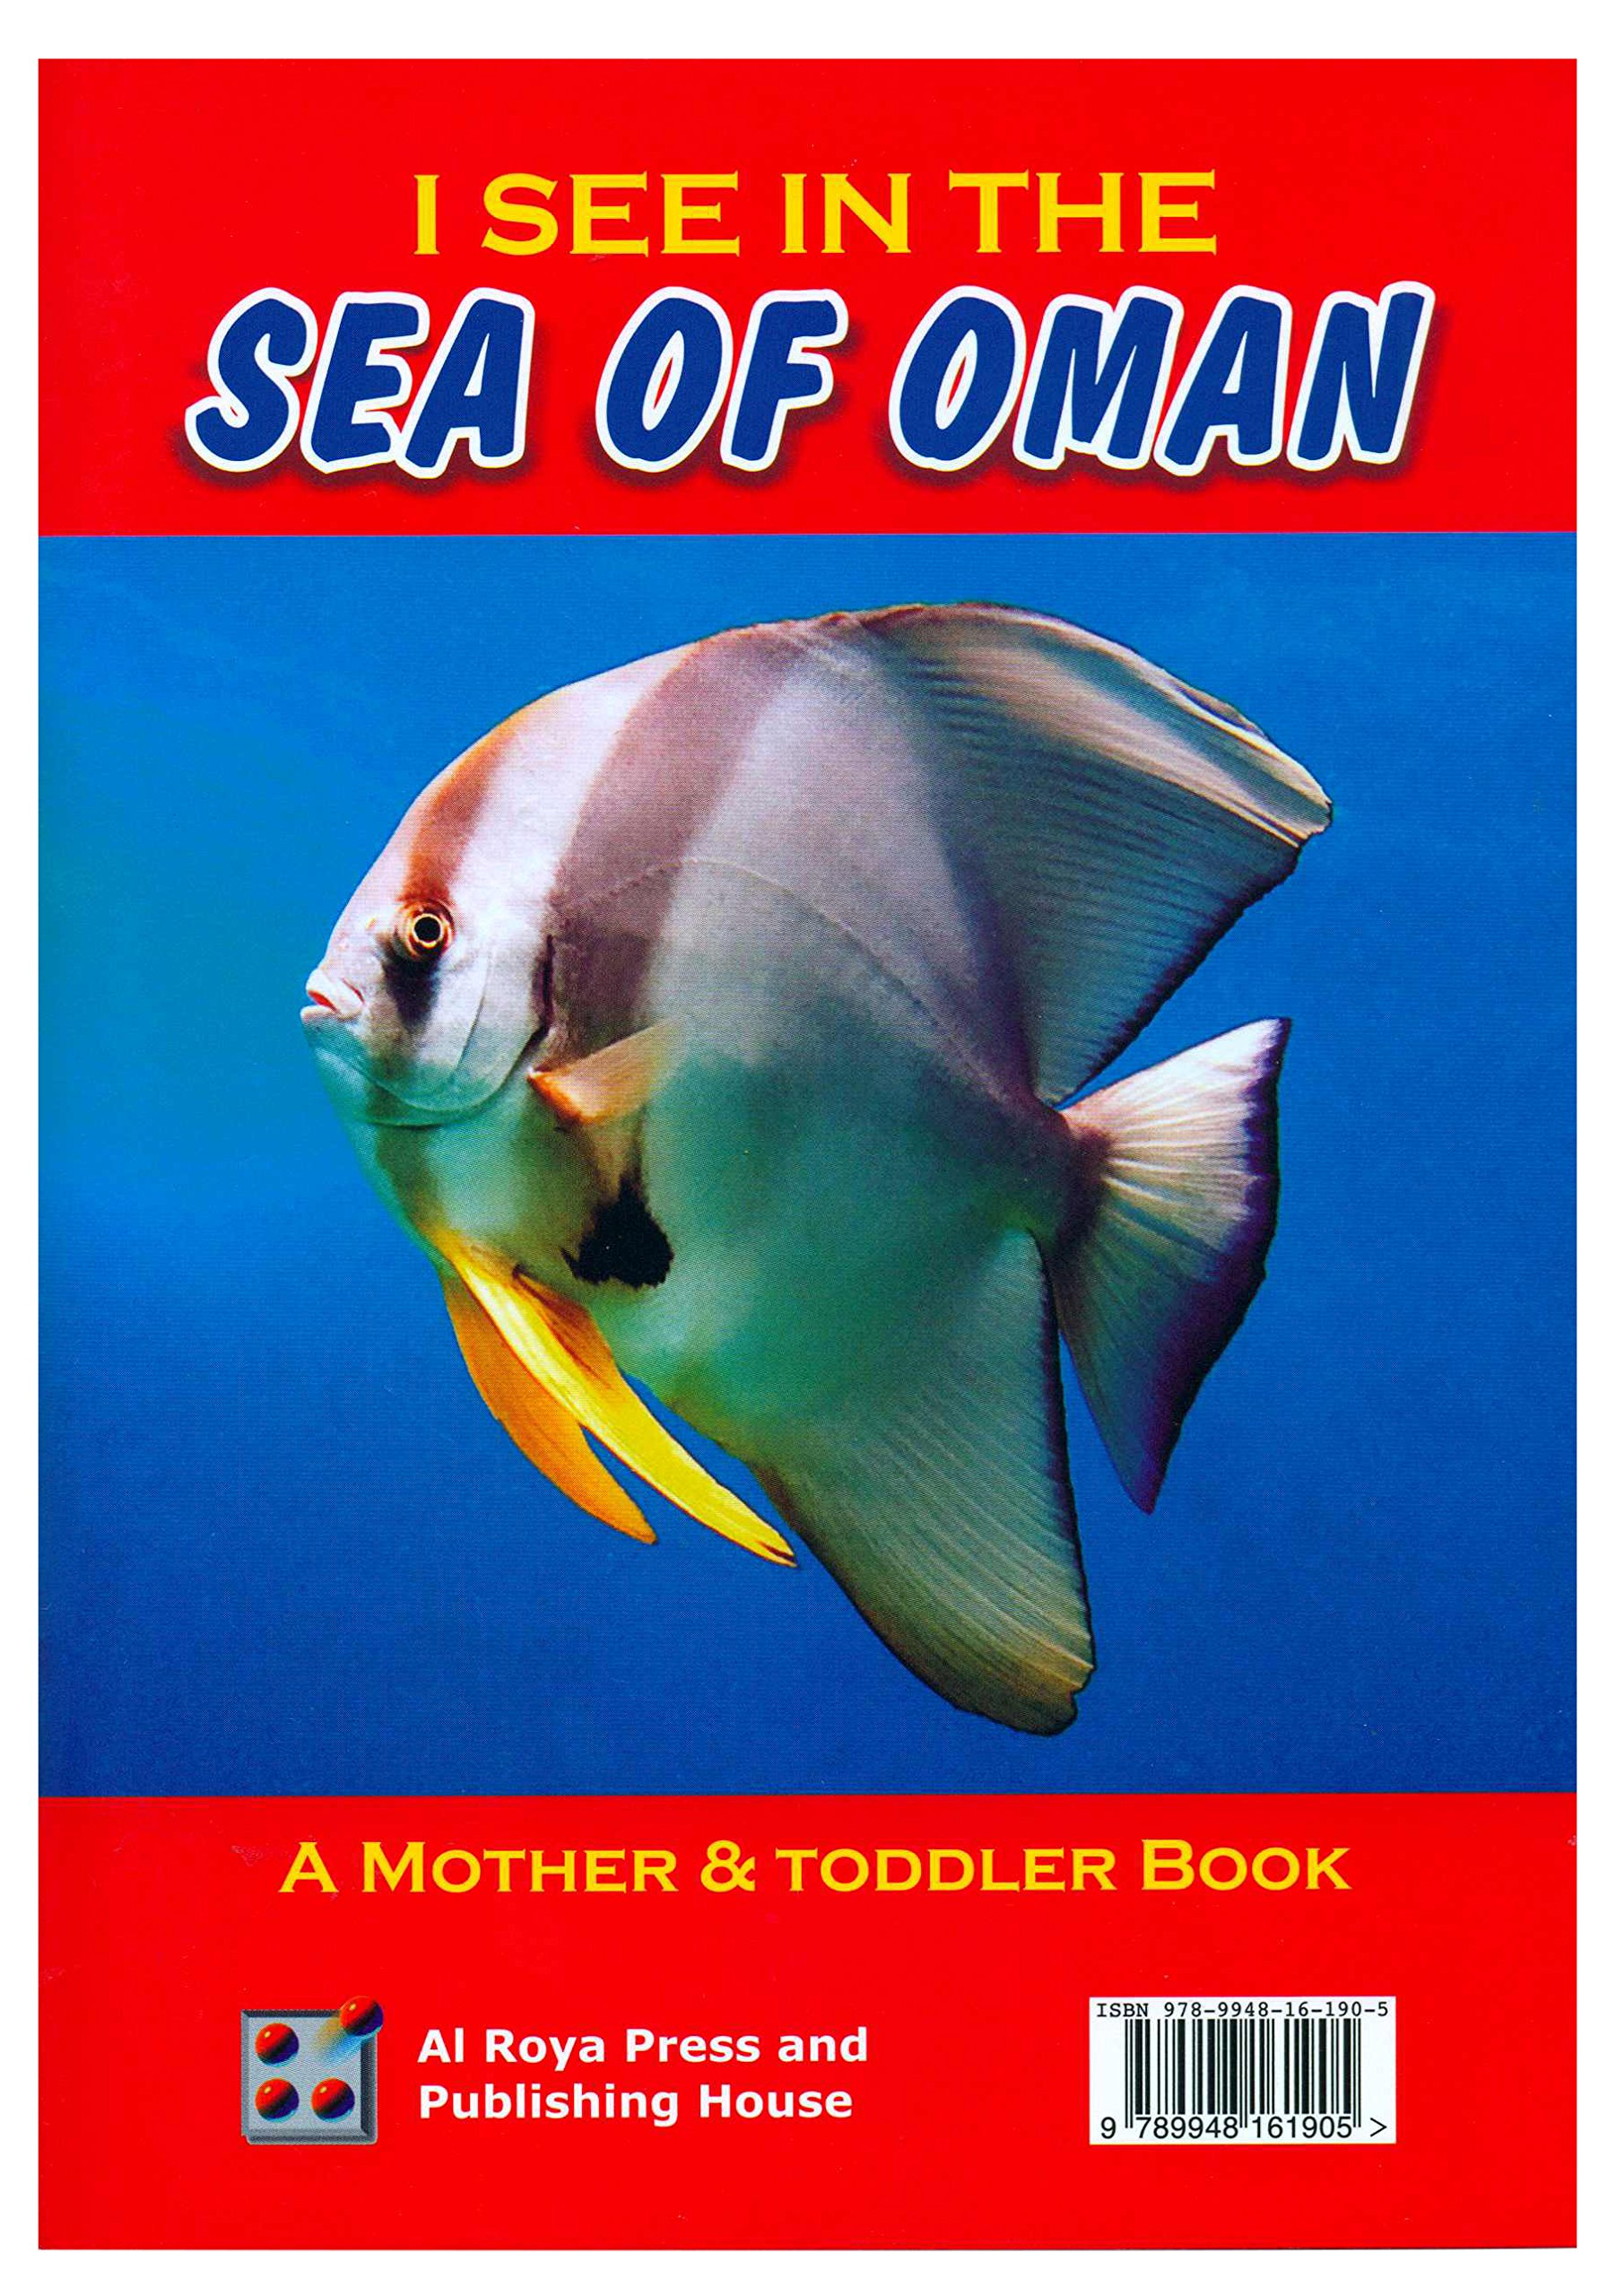 I See in the Sea of Oman